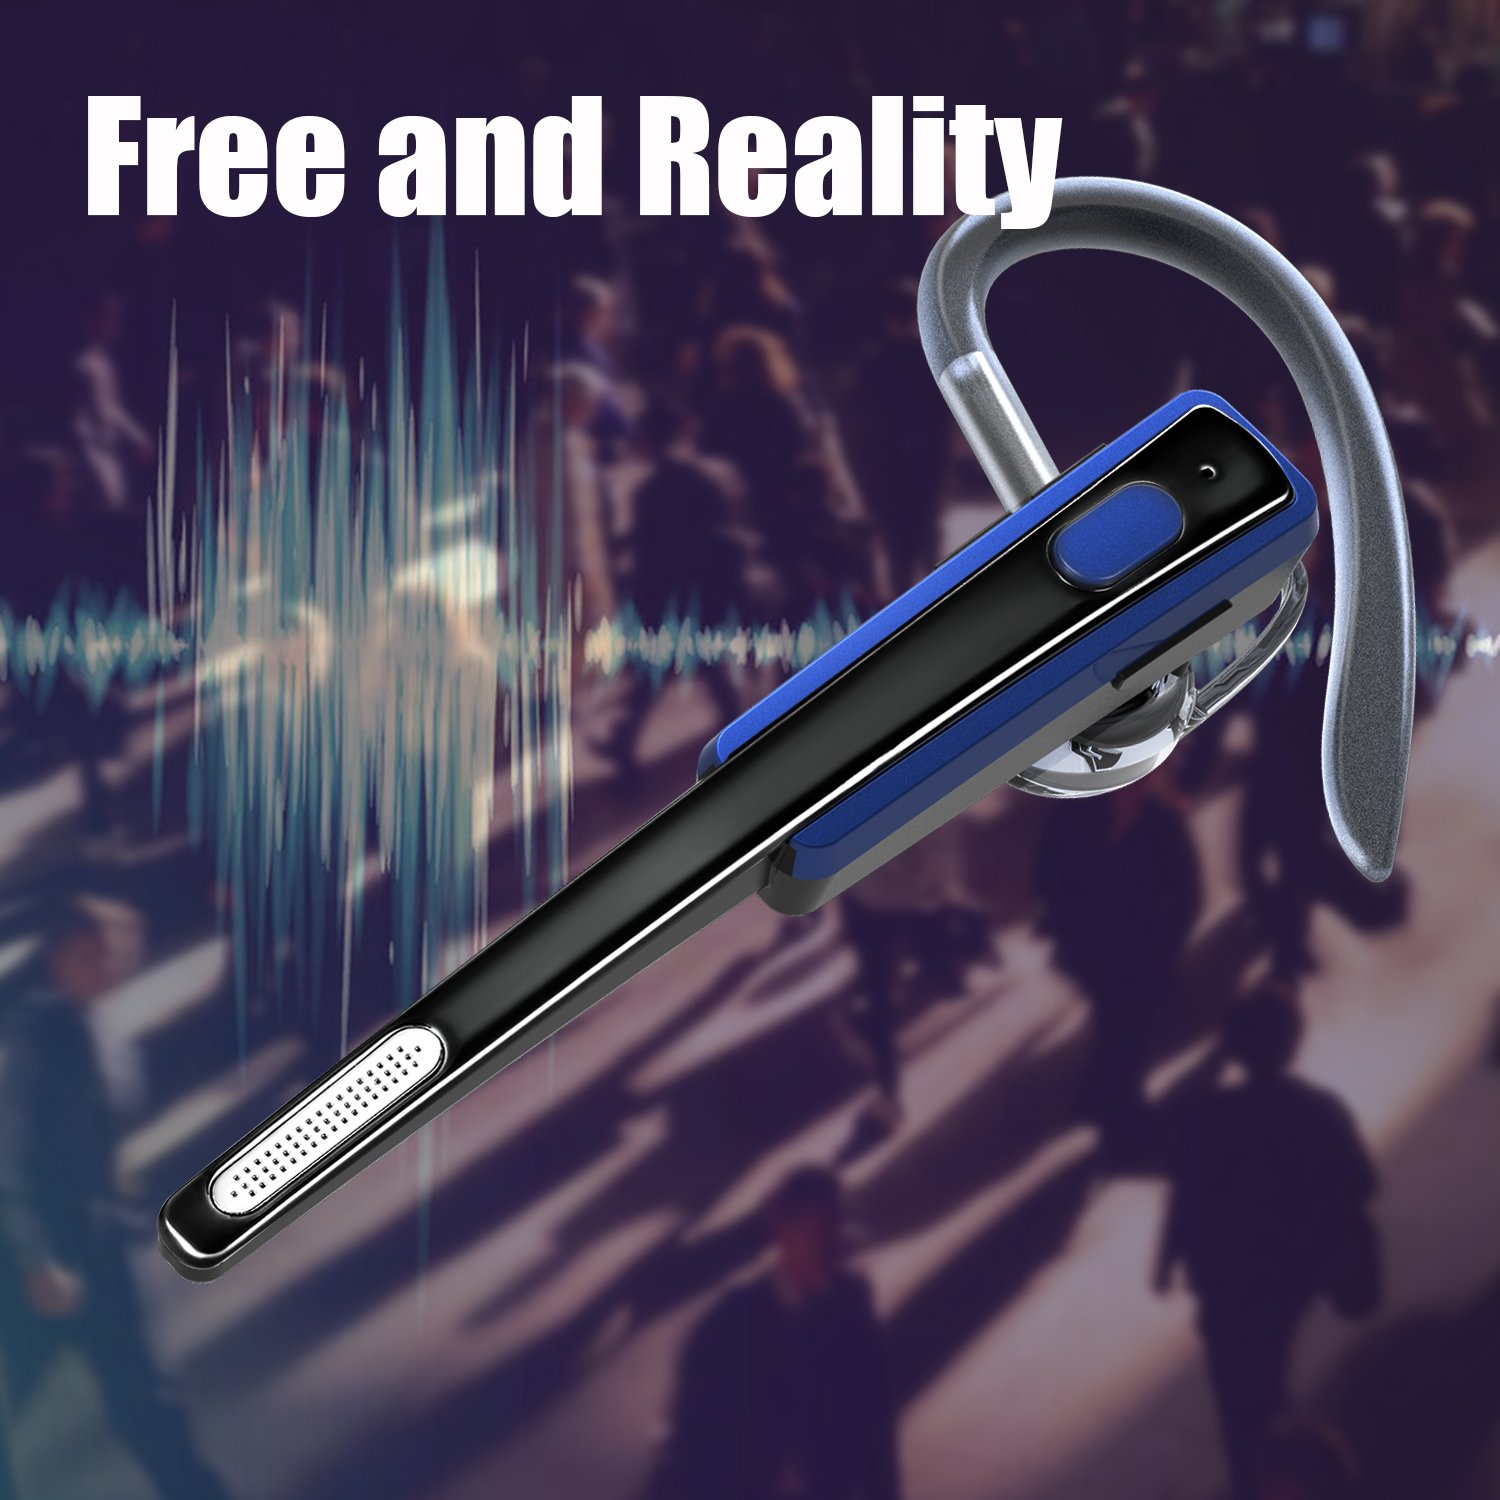 Bluetooth Headset, Wireless Earphones V4.1 Lightweight Sweatproof Headphones with In-ear Earbuds, Noise Cancelling Mic and Hands-free Calling for Iphone, Android Cellphones